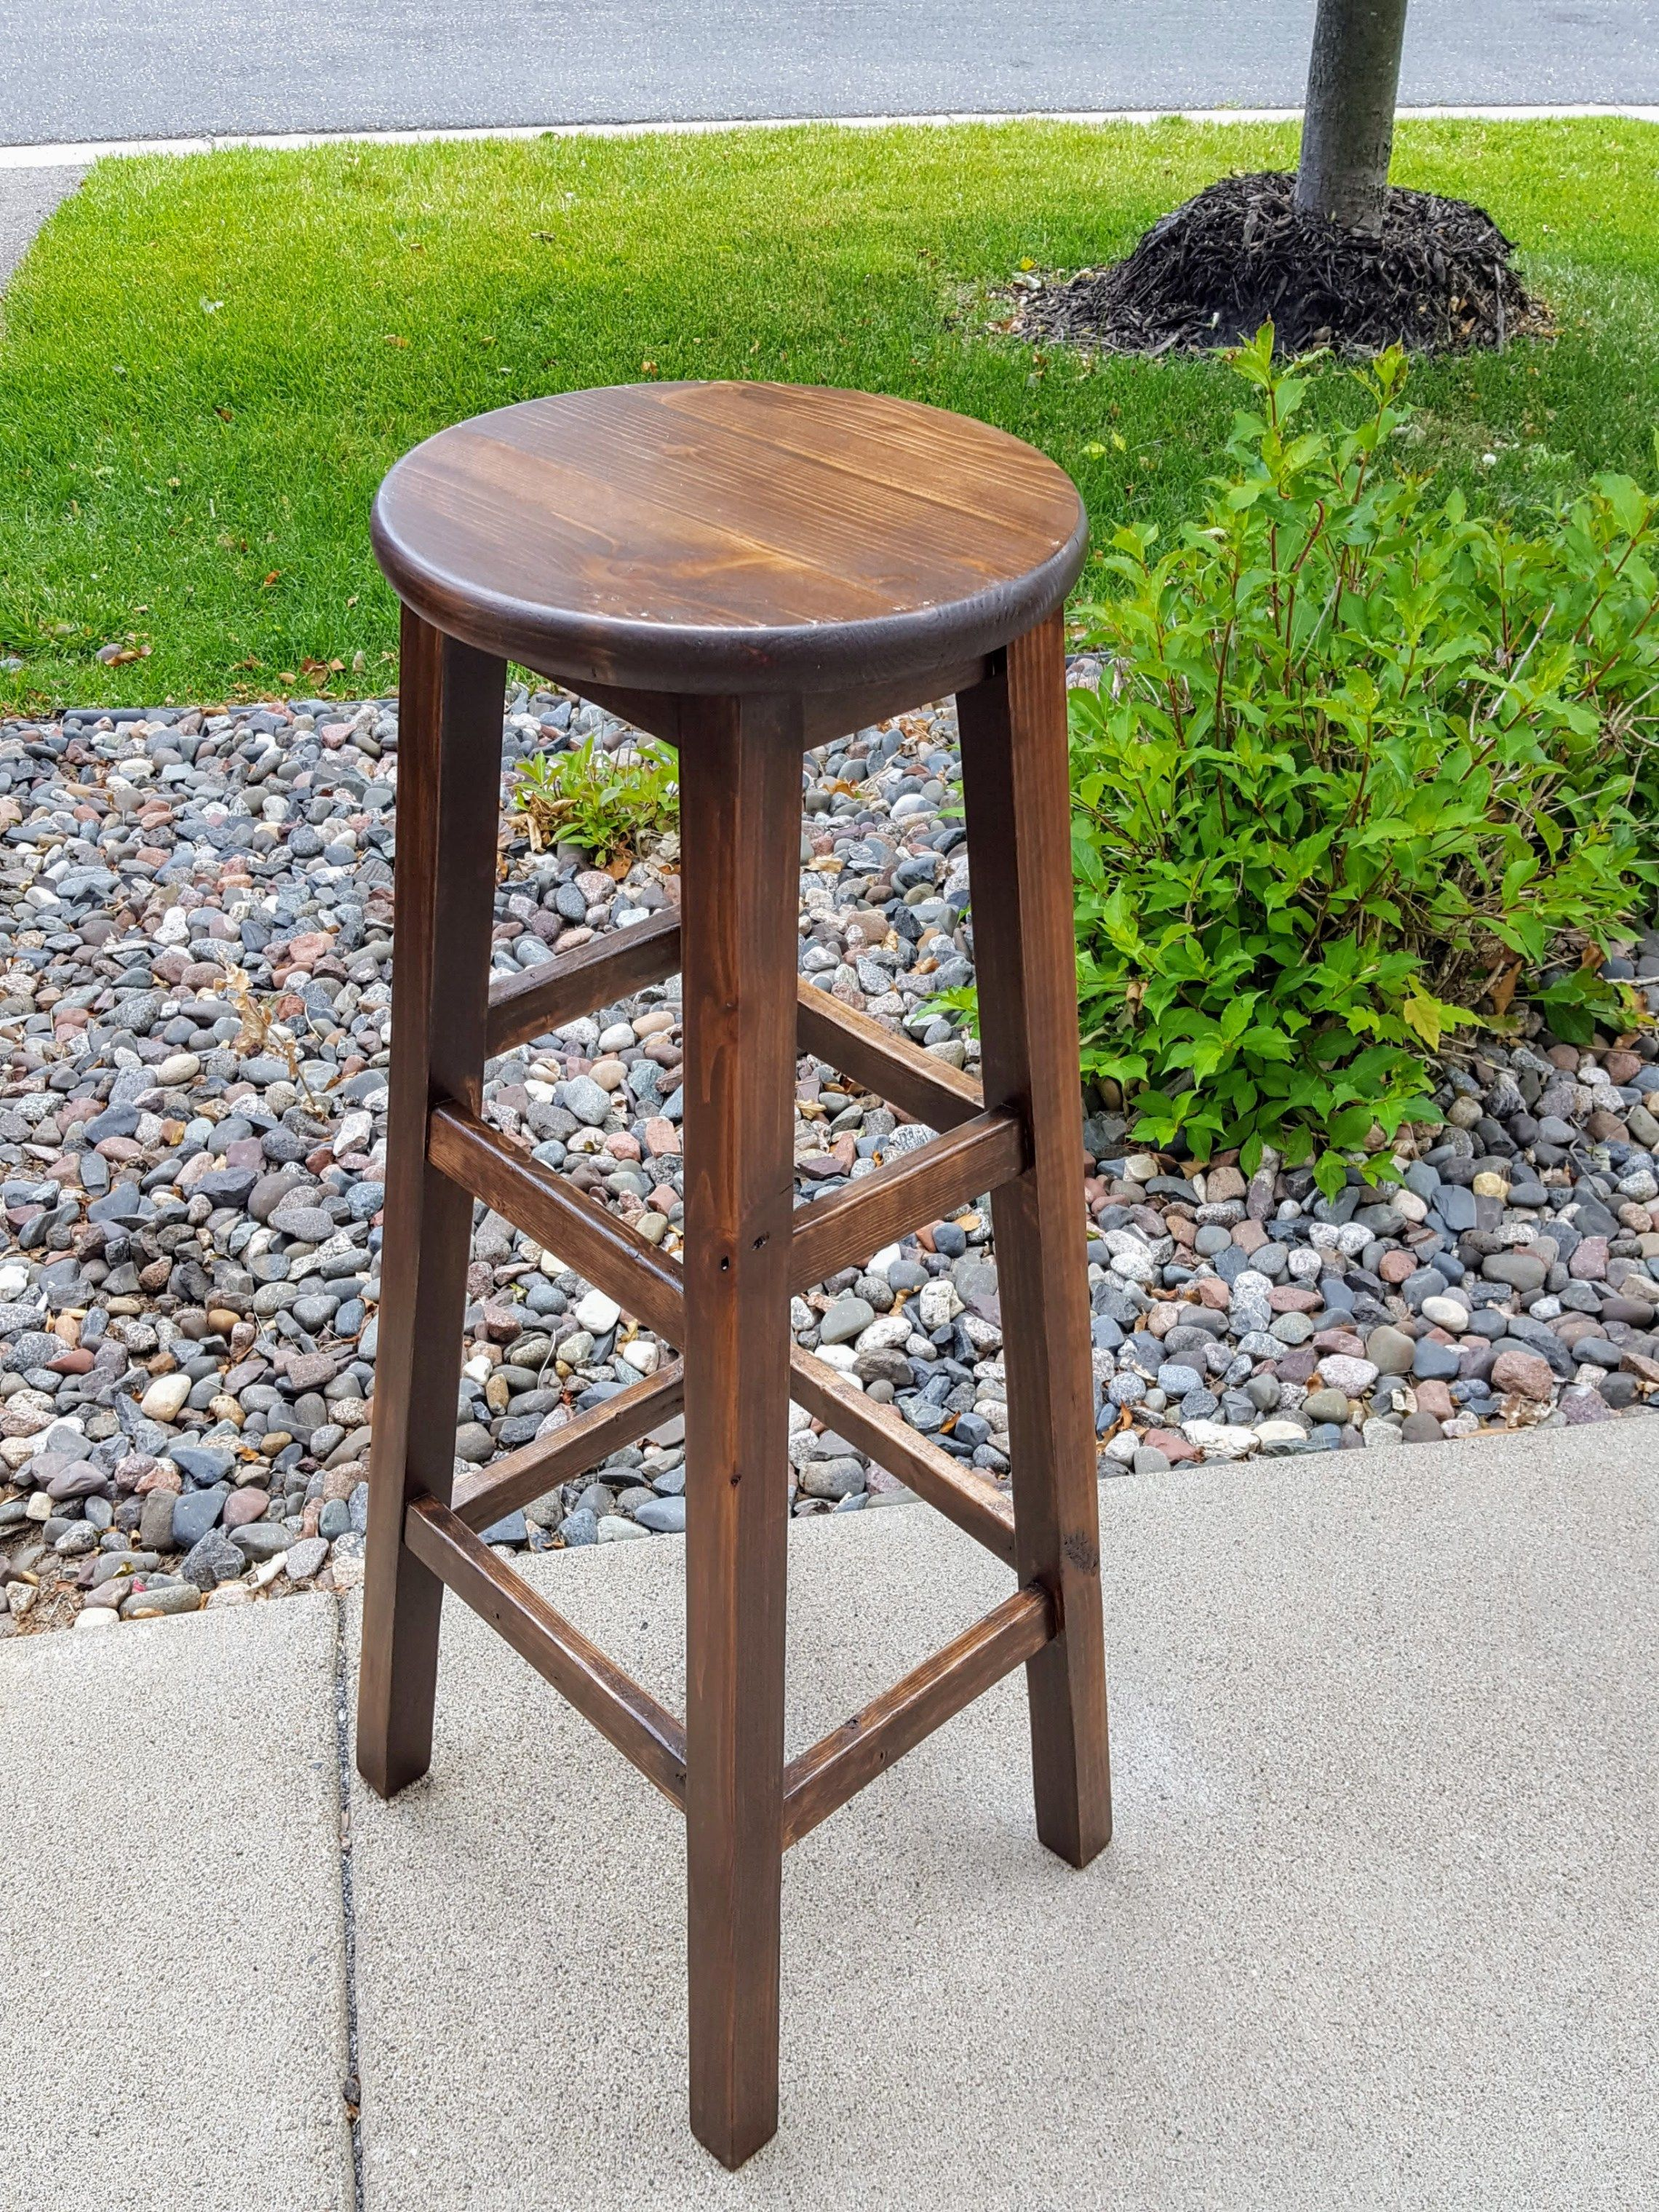 Build Your Own Round Top Bar Stools With This Simple Step By Step Diy Stool Tutorial Includes A Free Pdf Download O Wooden Stools Diy Diy Stool Diy Bar Stools